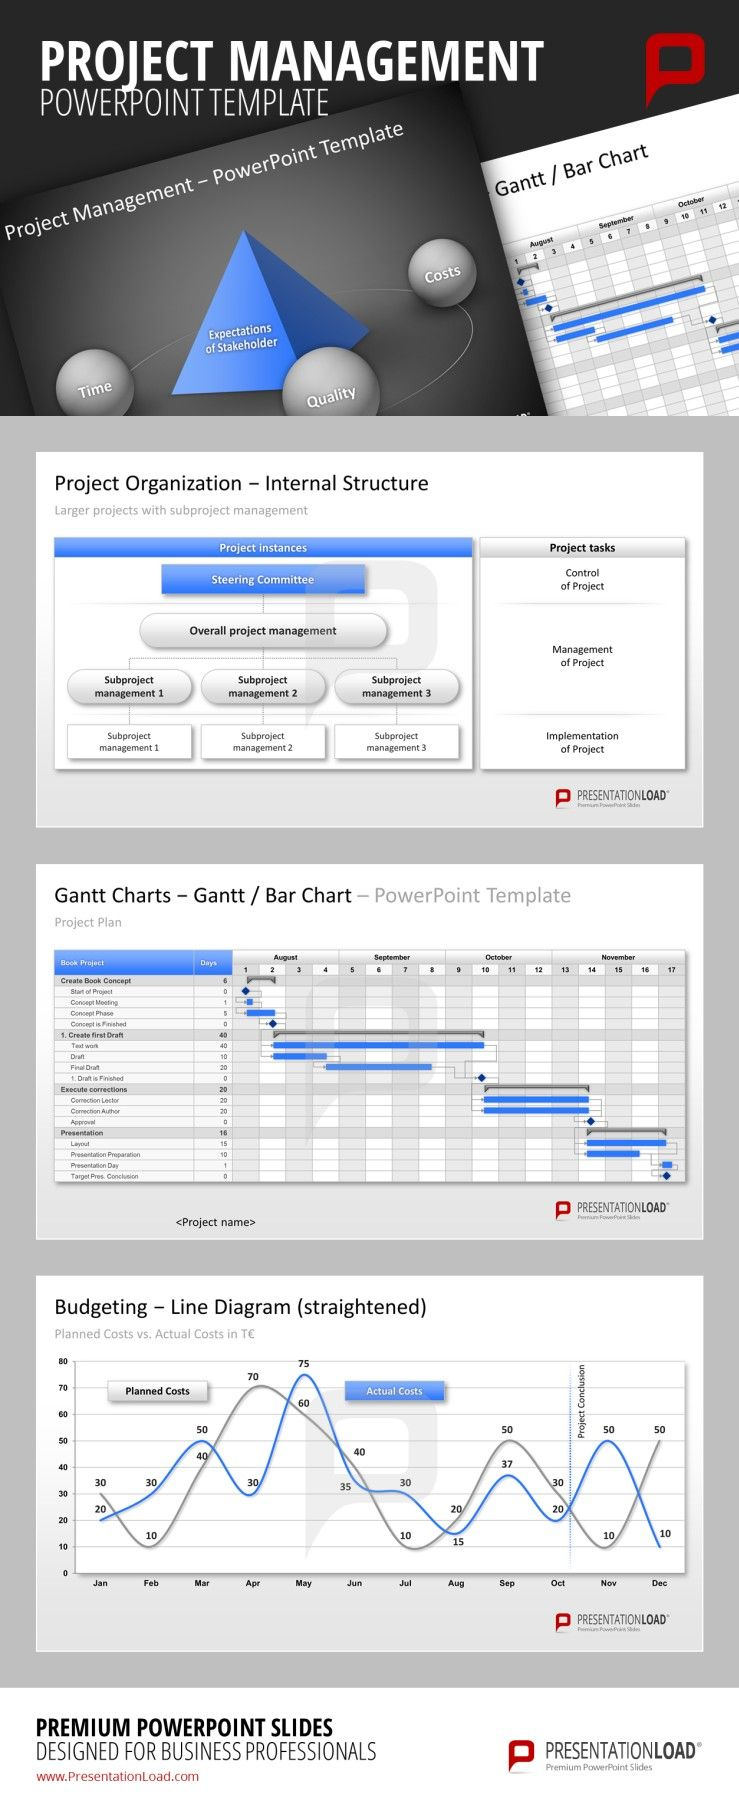 Project Management PowerPoint Templates for the planning, defining ...